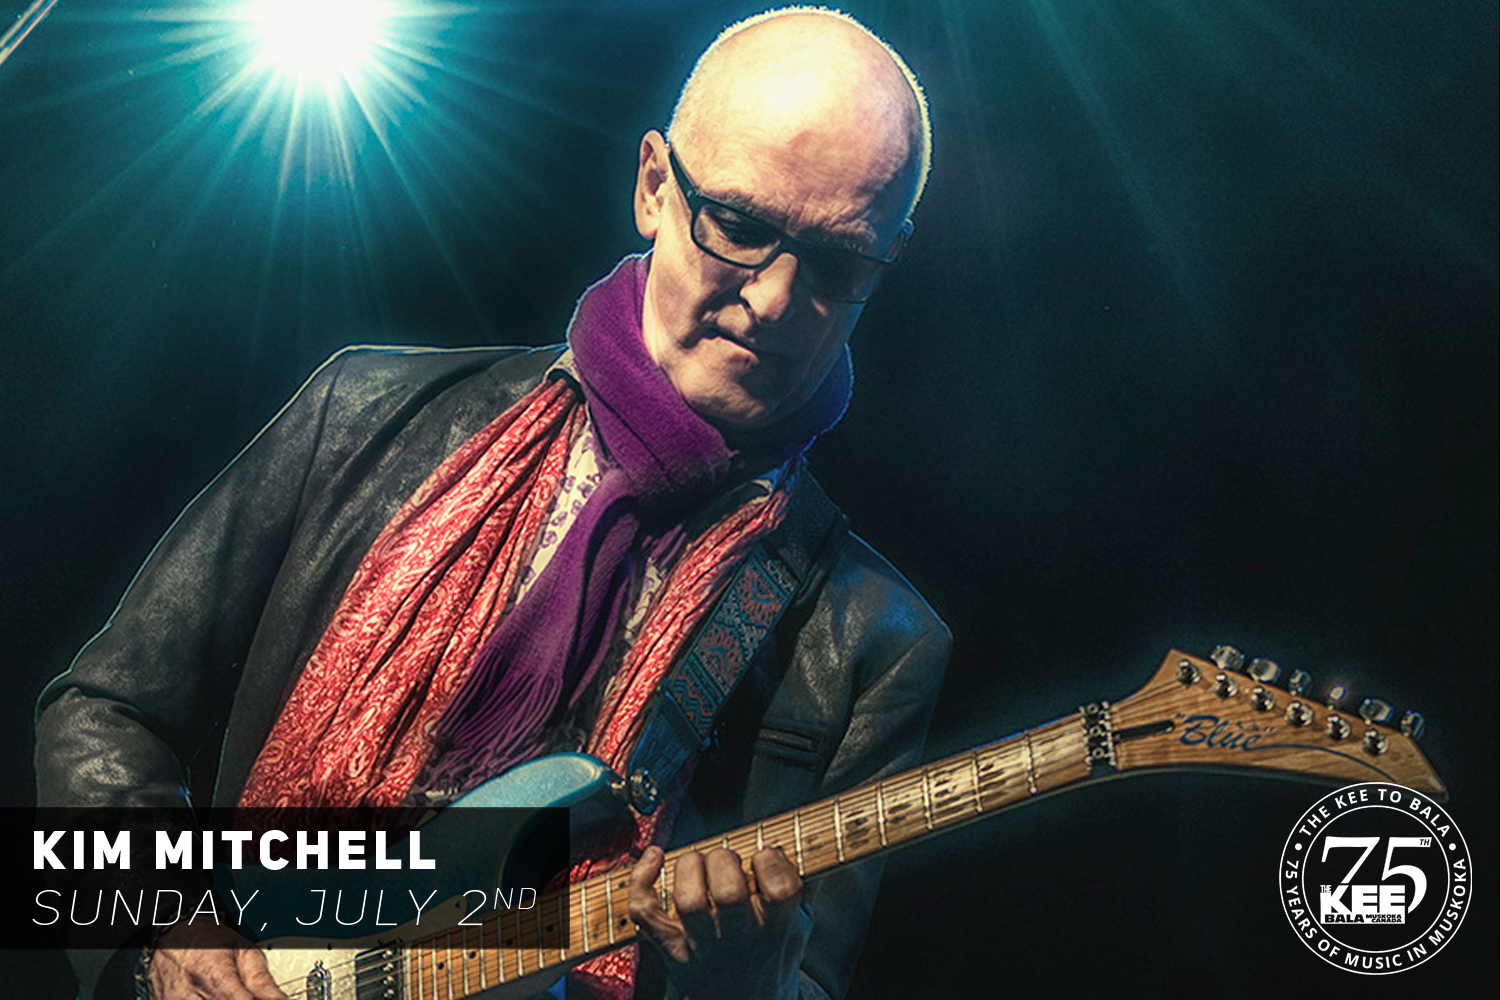 Kim Mitchell at The KEE to Bala